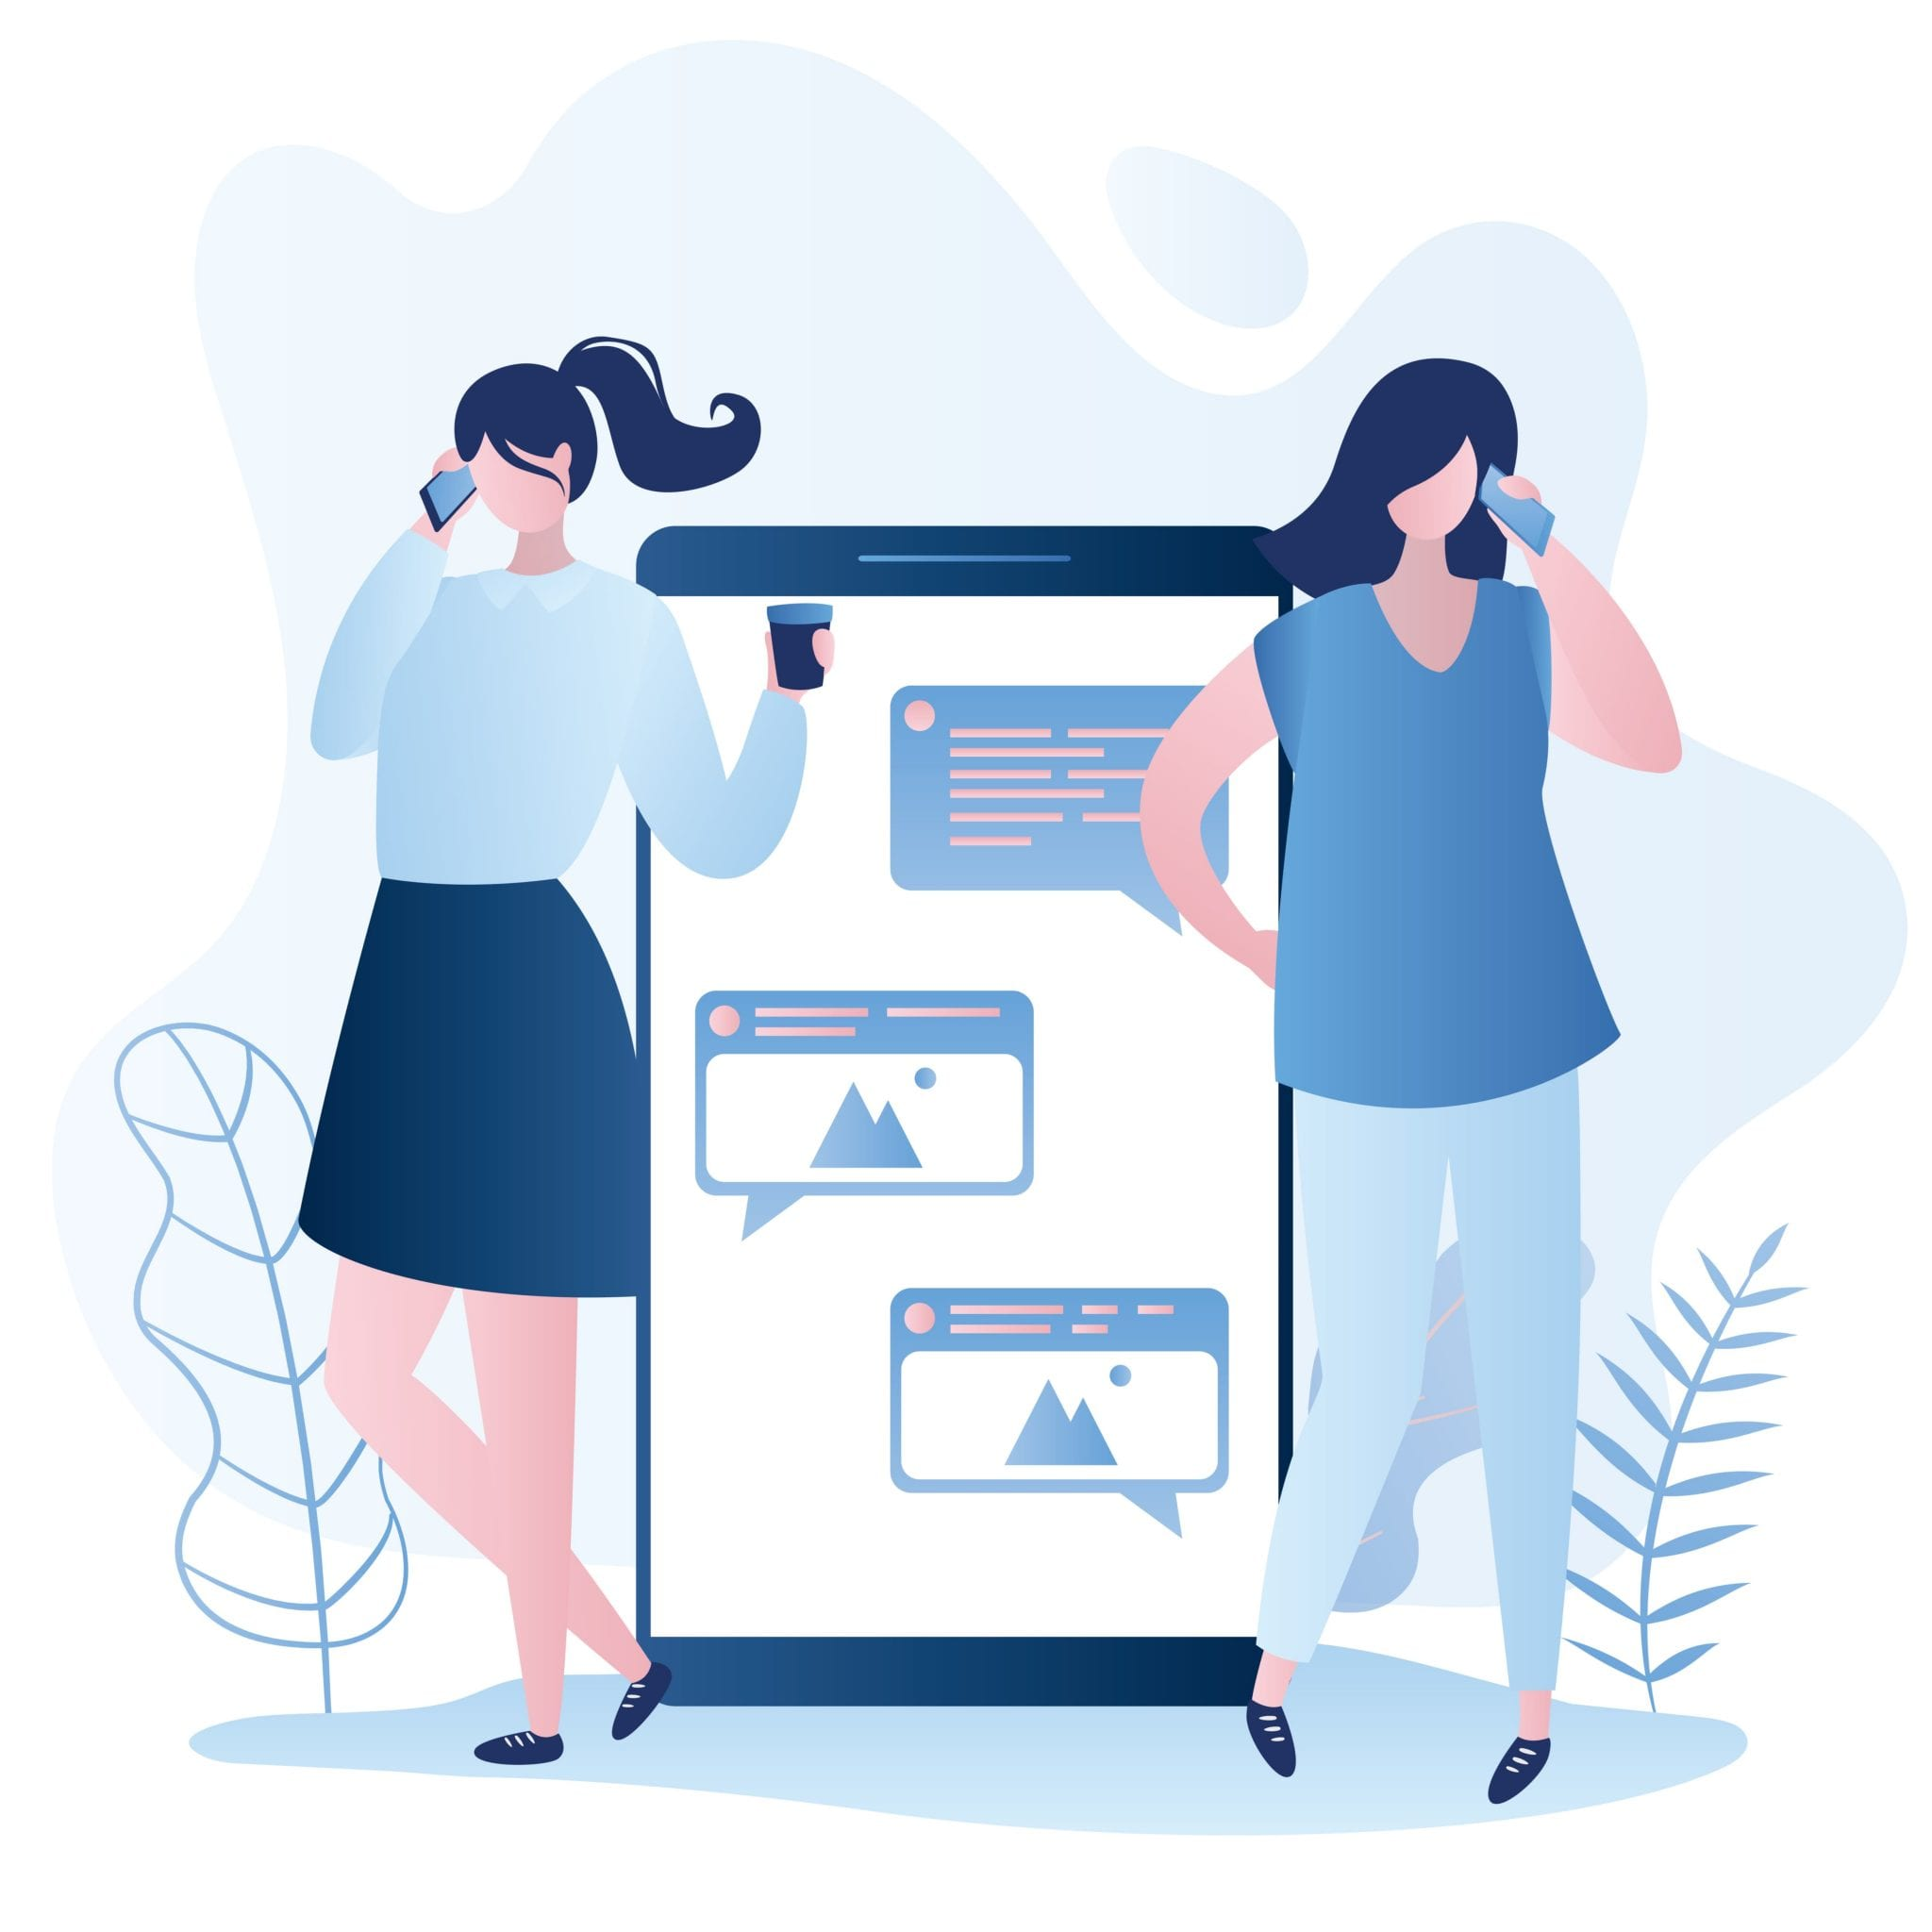 Big Smartphone With Speech Bubble and Young Women Chatting, Internet Social Communication Concept, Vector Illustration in Trendy Style.